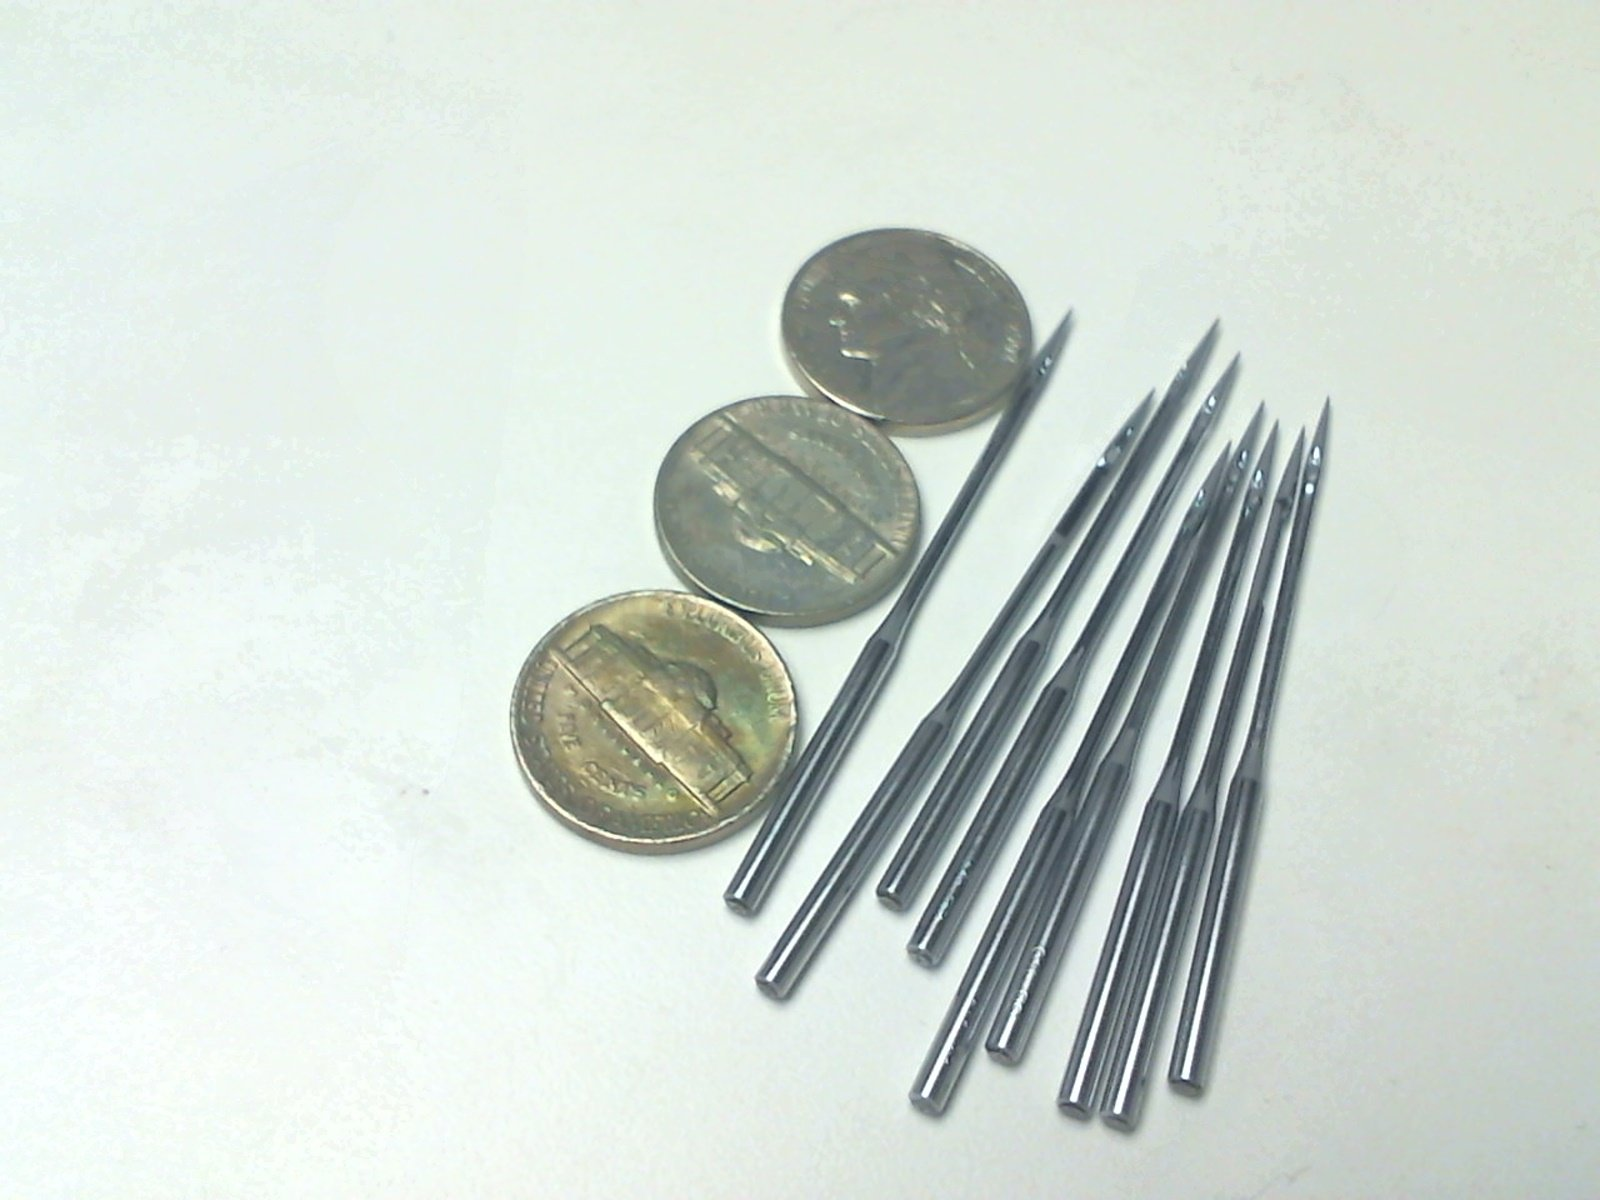 7X23 NEEDLES SIZE 140/22  10 PK GROZ BECKERT